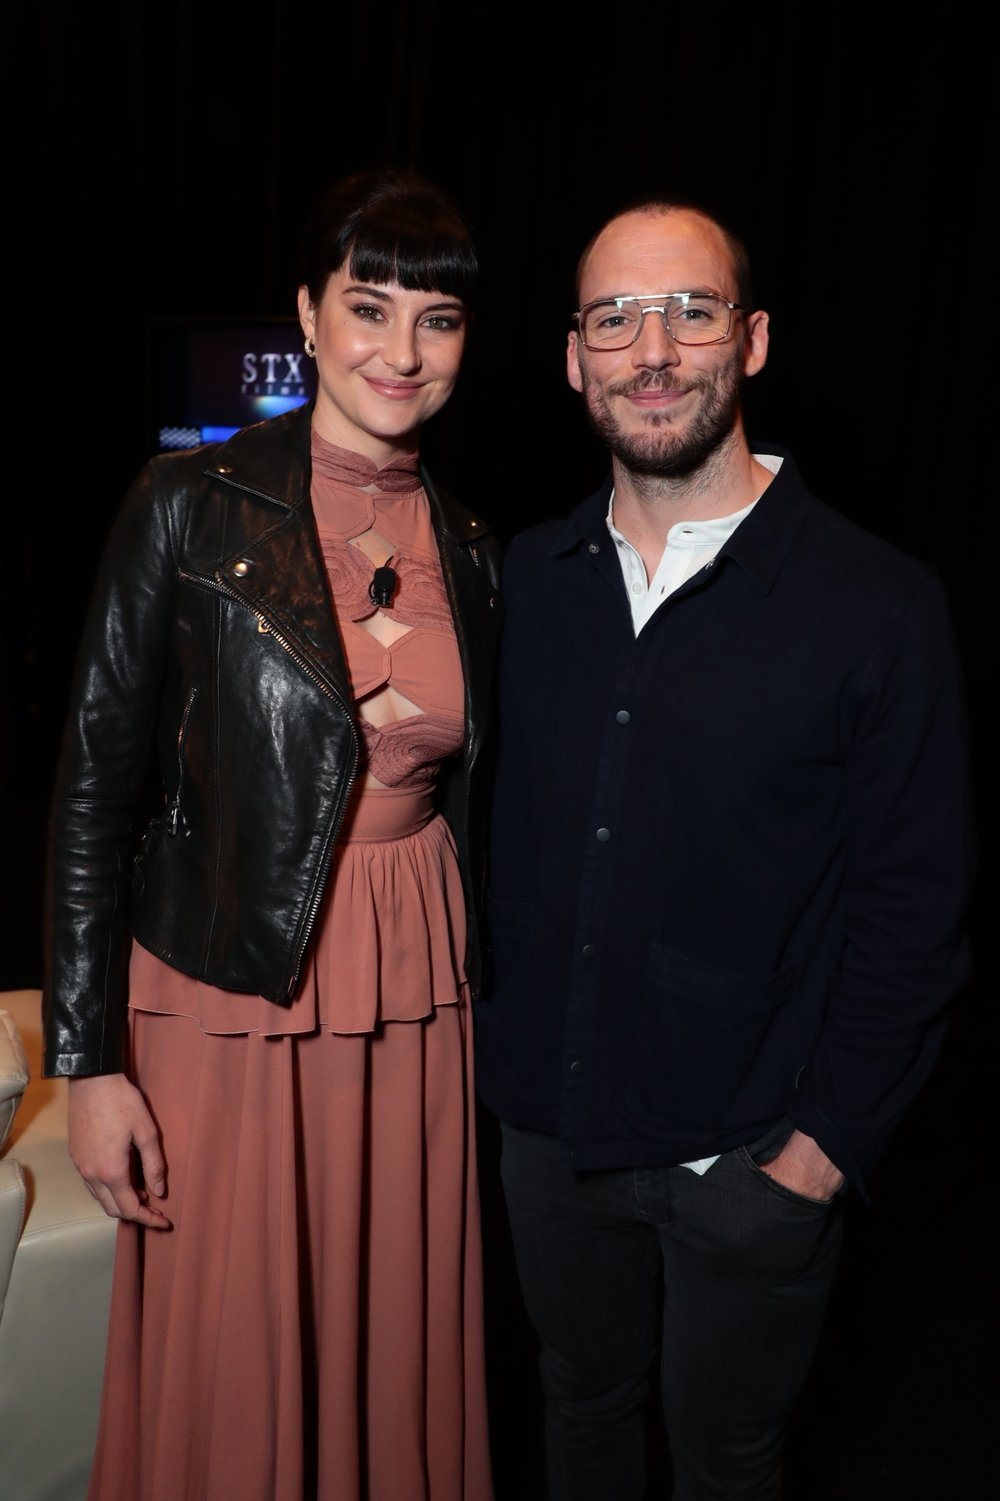 Shailene Woodley and Sam Claflin attend STXfilms' 2018 CinemaCon Presentation at The Colosseum of Caesars Palace, Las Vegas, NV Tuesday, April 24, 2018.